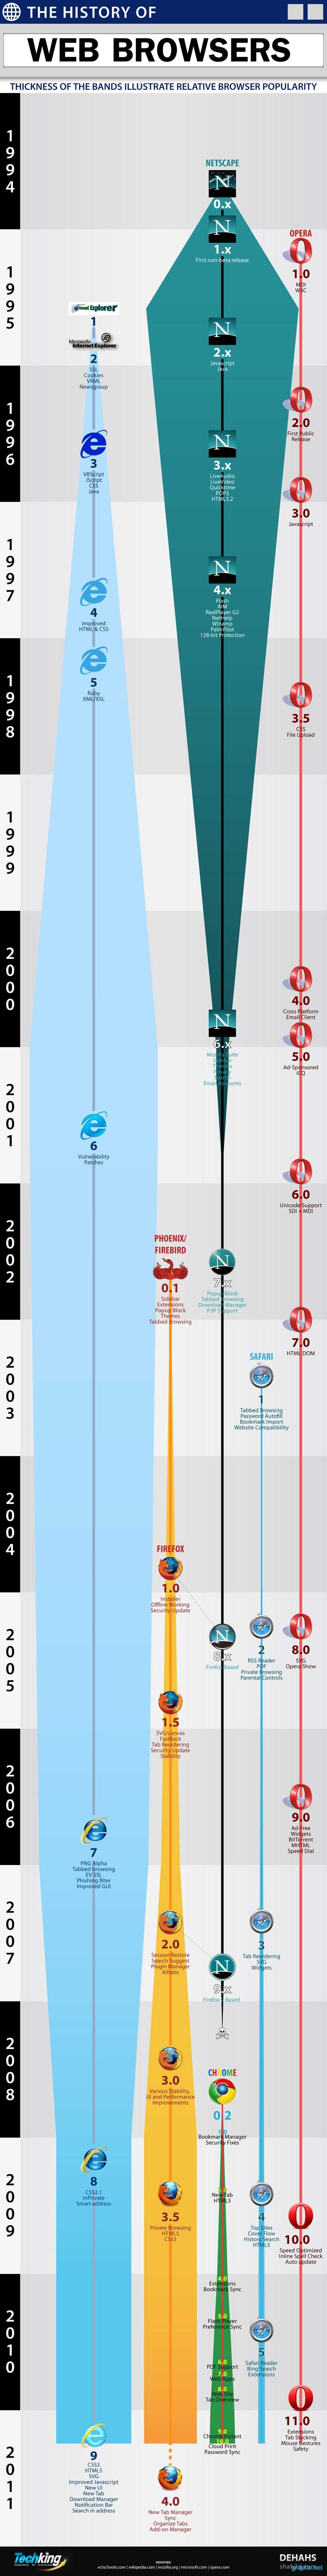 Web Browsers Timeline